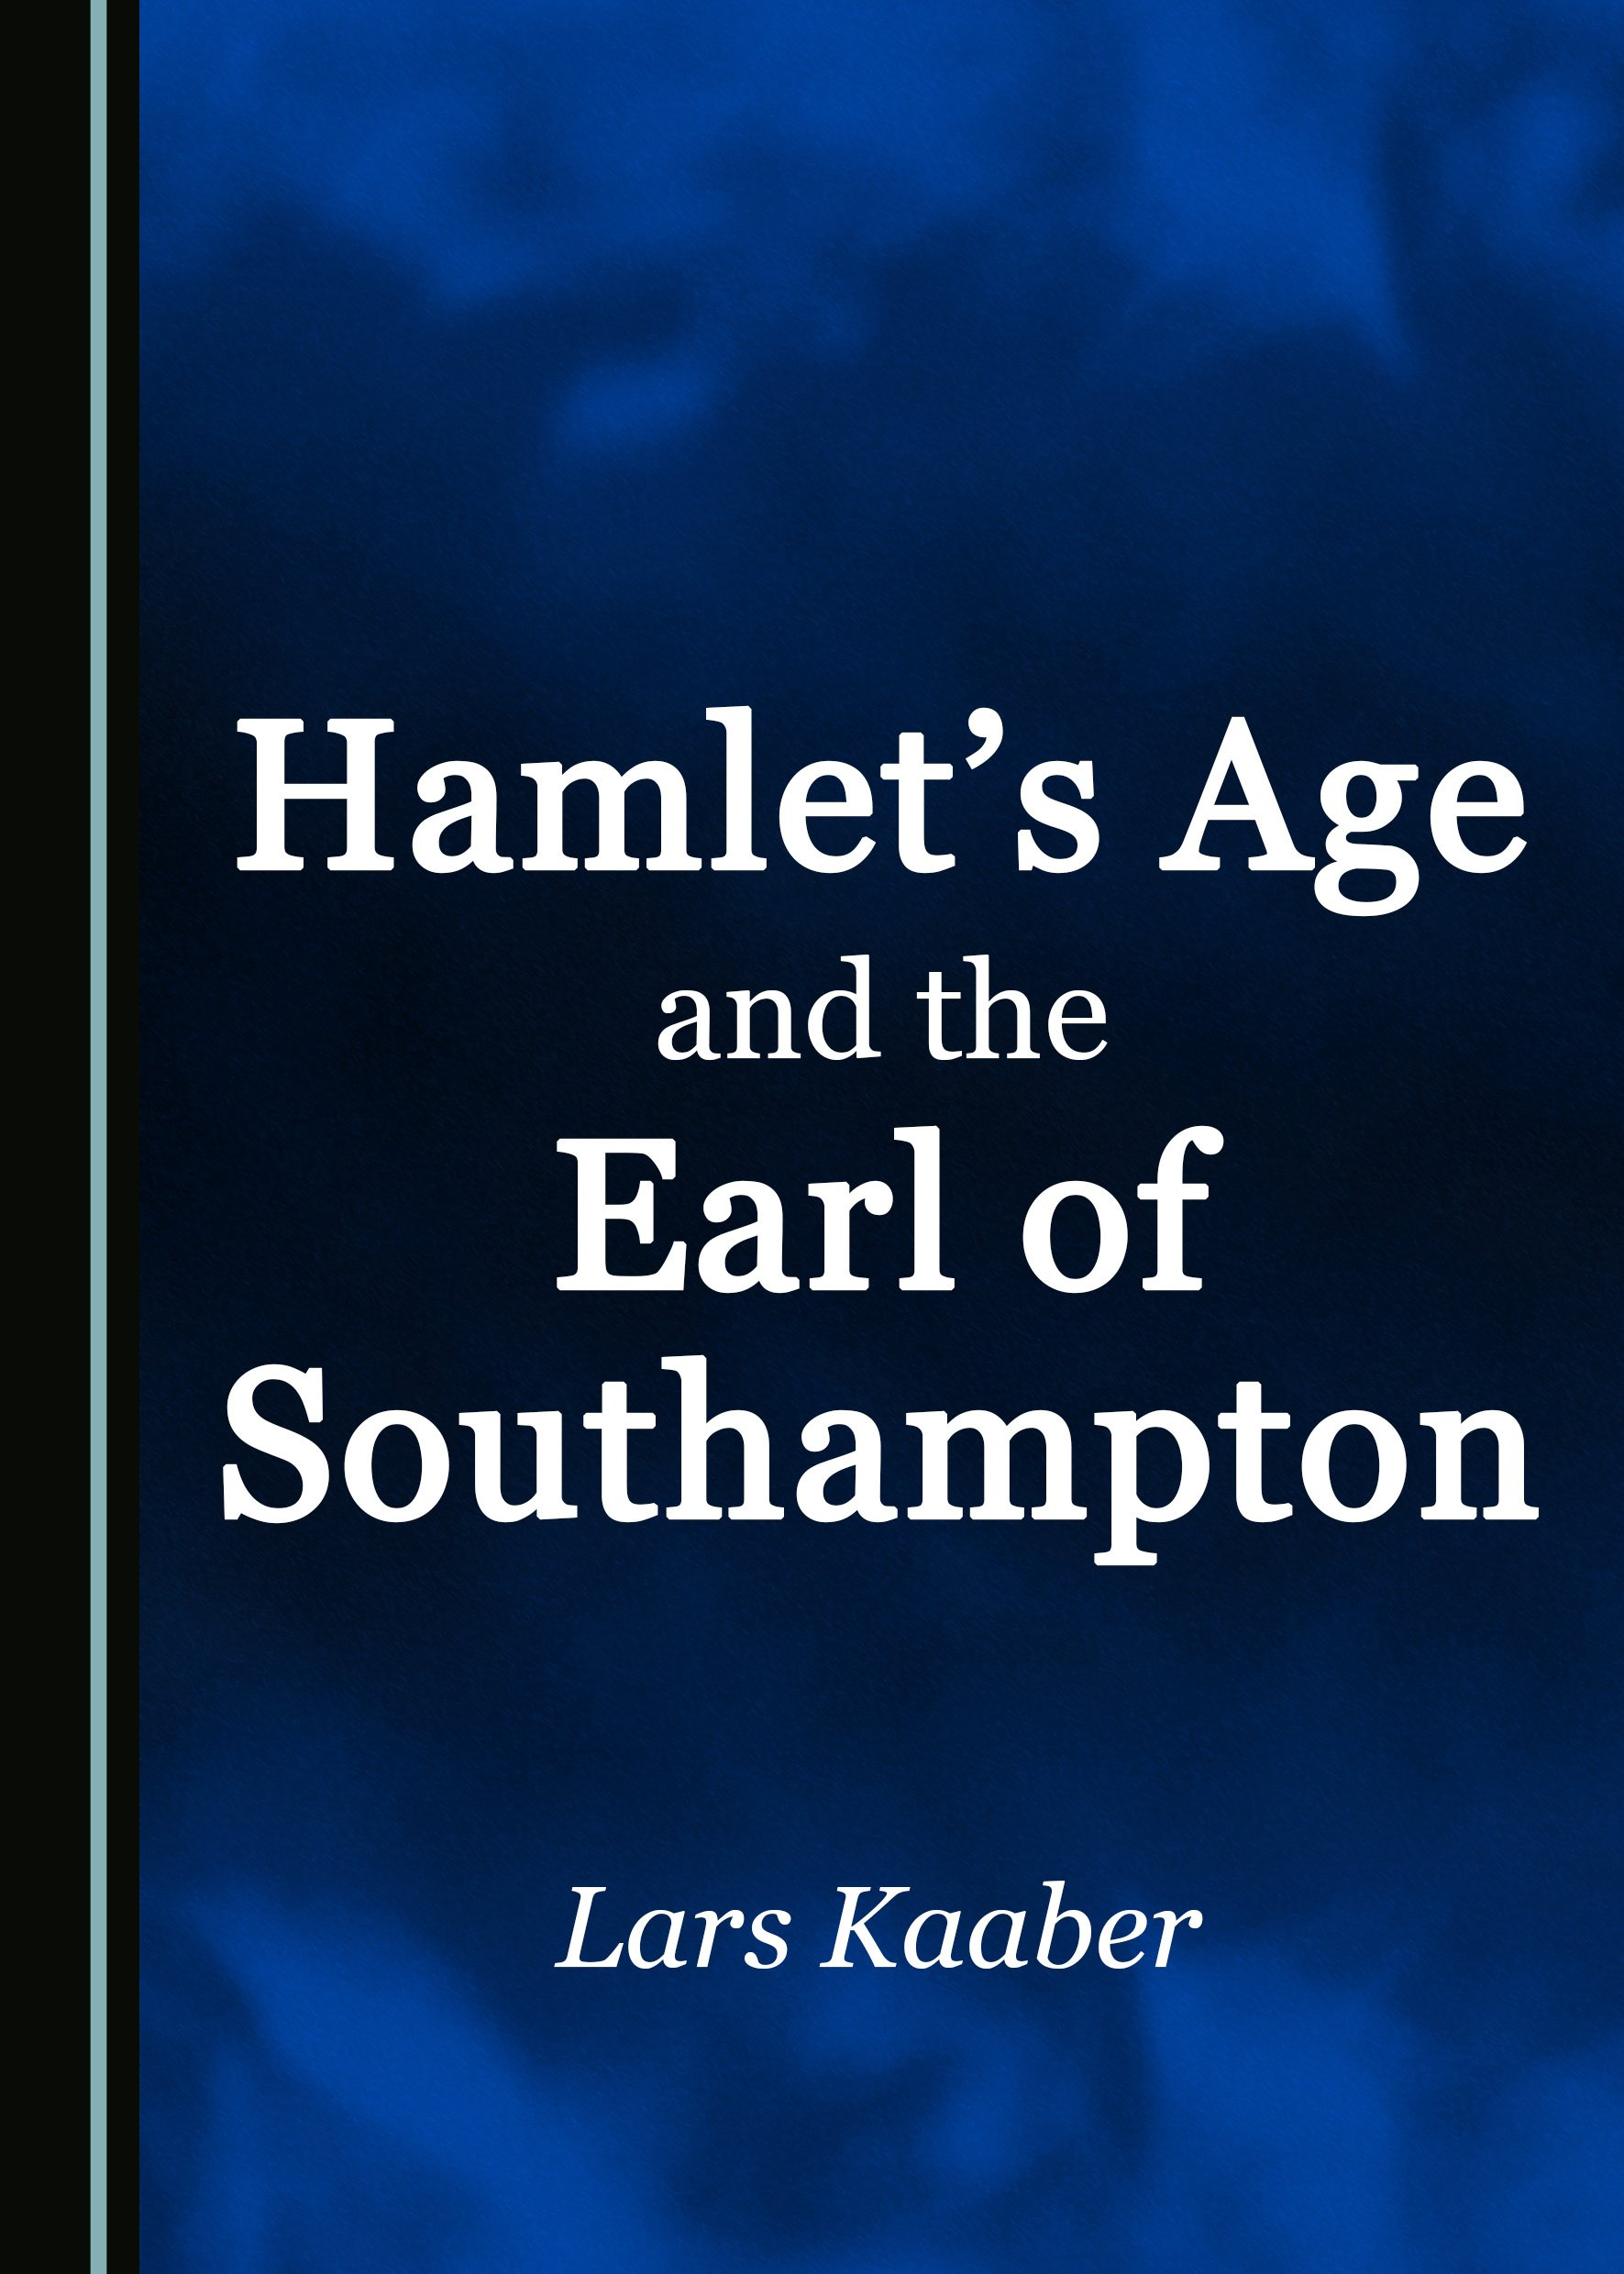 Hamlet's Age and the Earl of Southampton